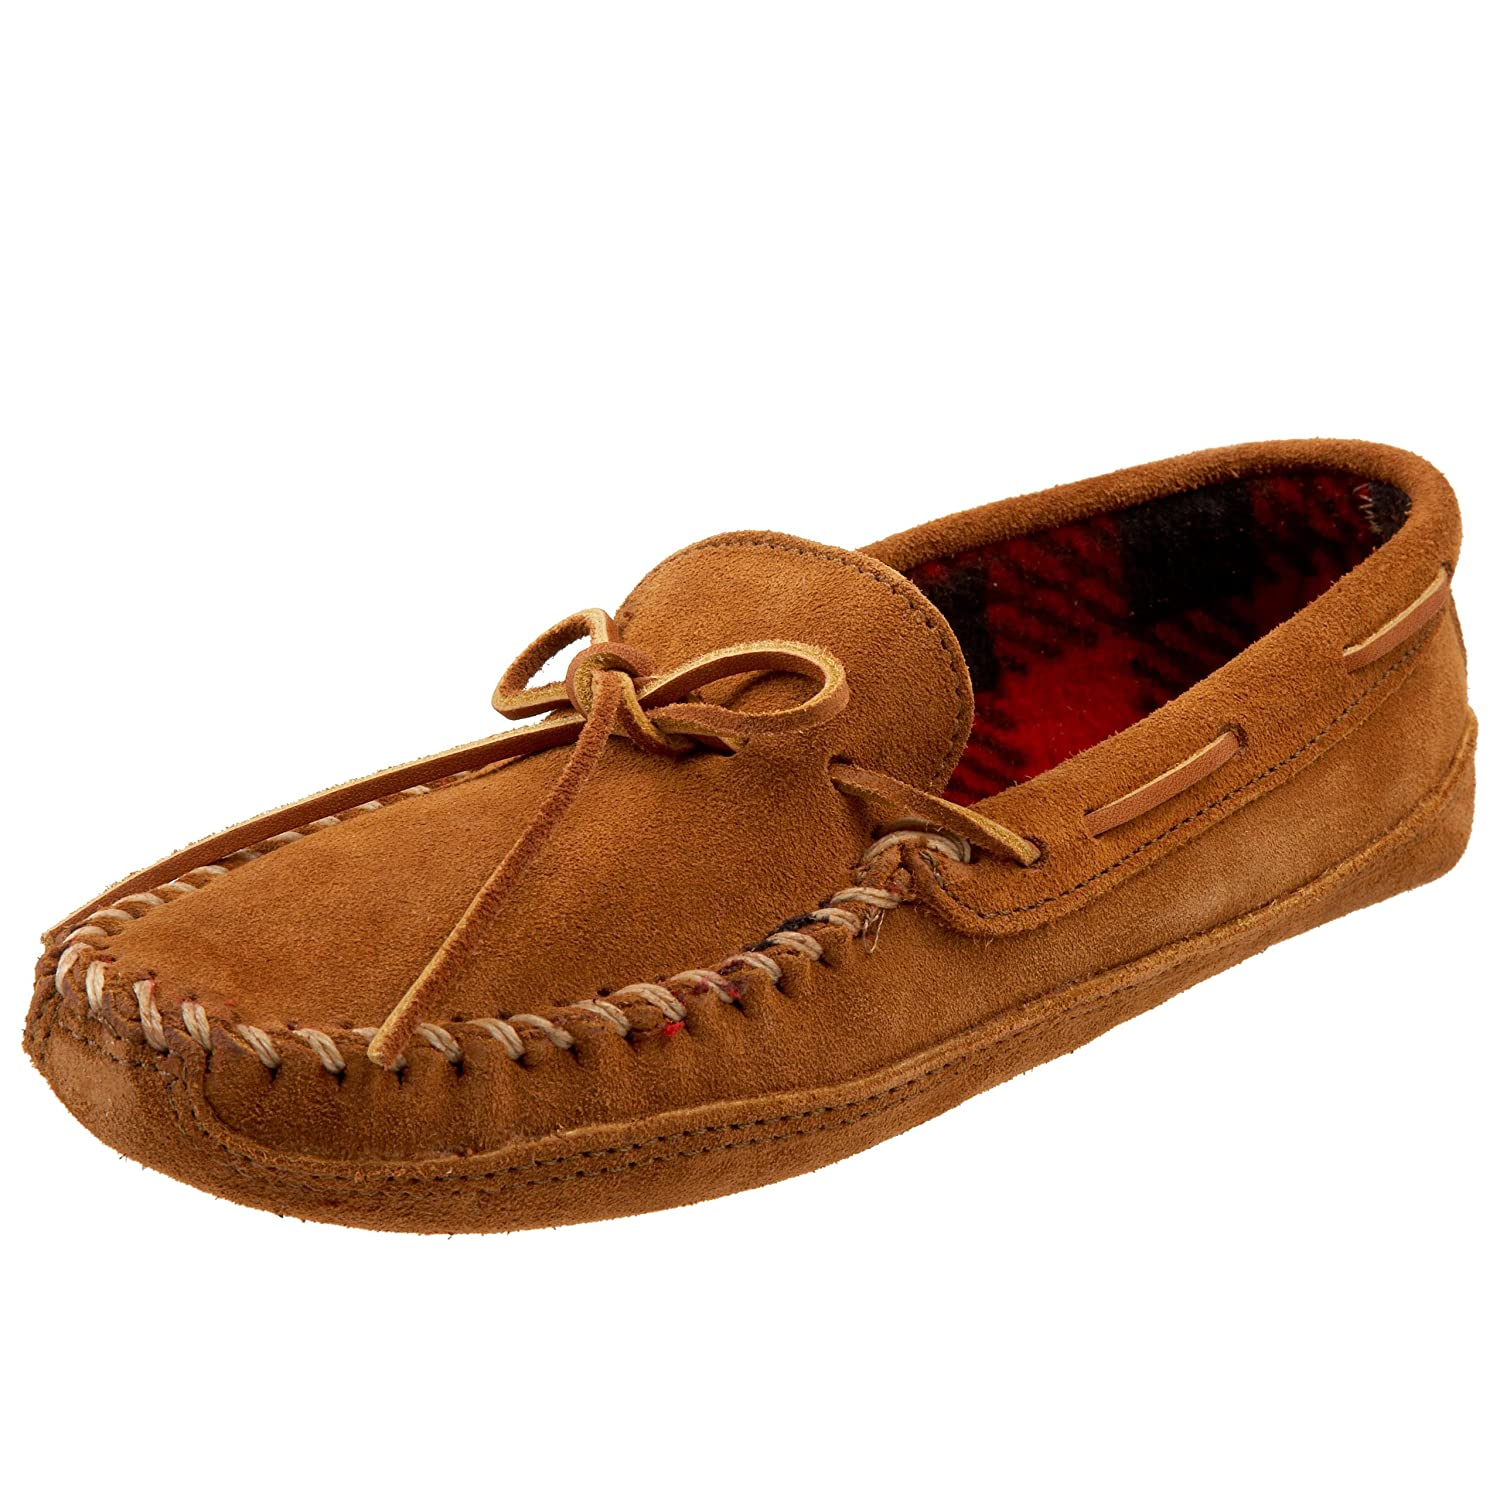 Minnetonka Double Bottom Fleece, Mocasines para Hombre, Marrón (Brown), 42 EU: Amazon.es: Zapatos y complementos